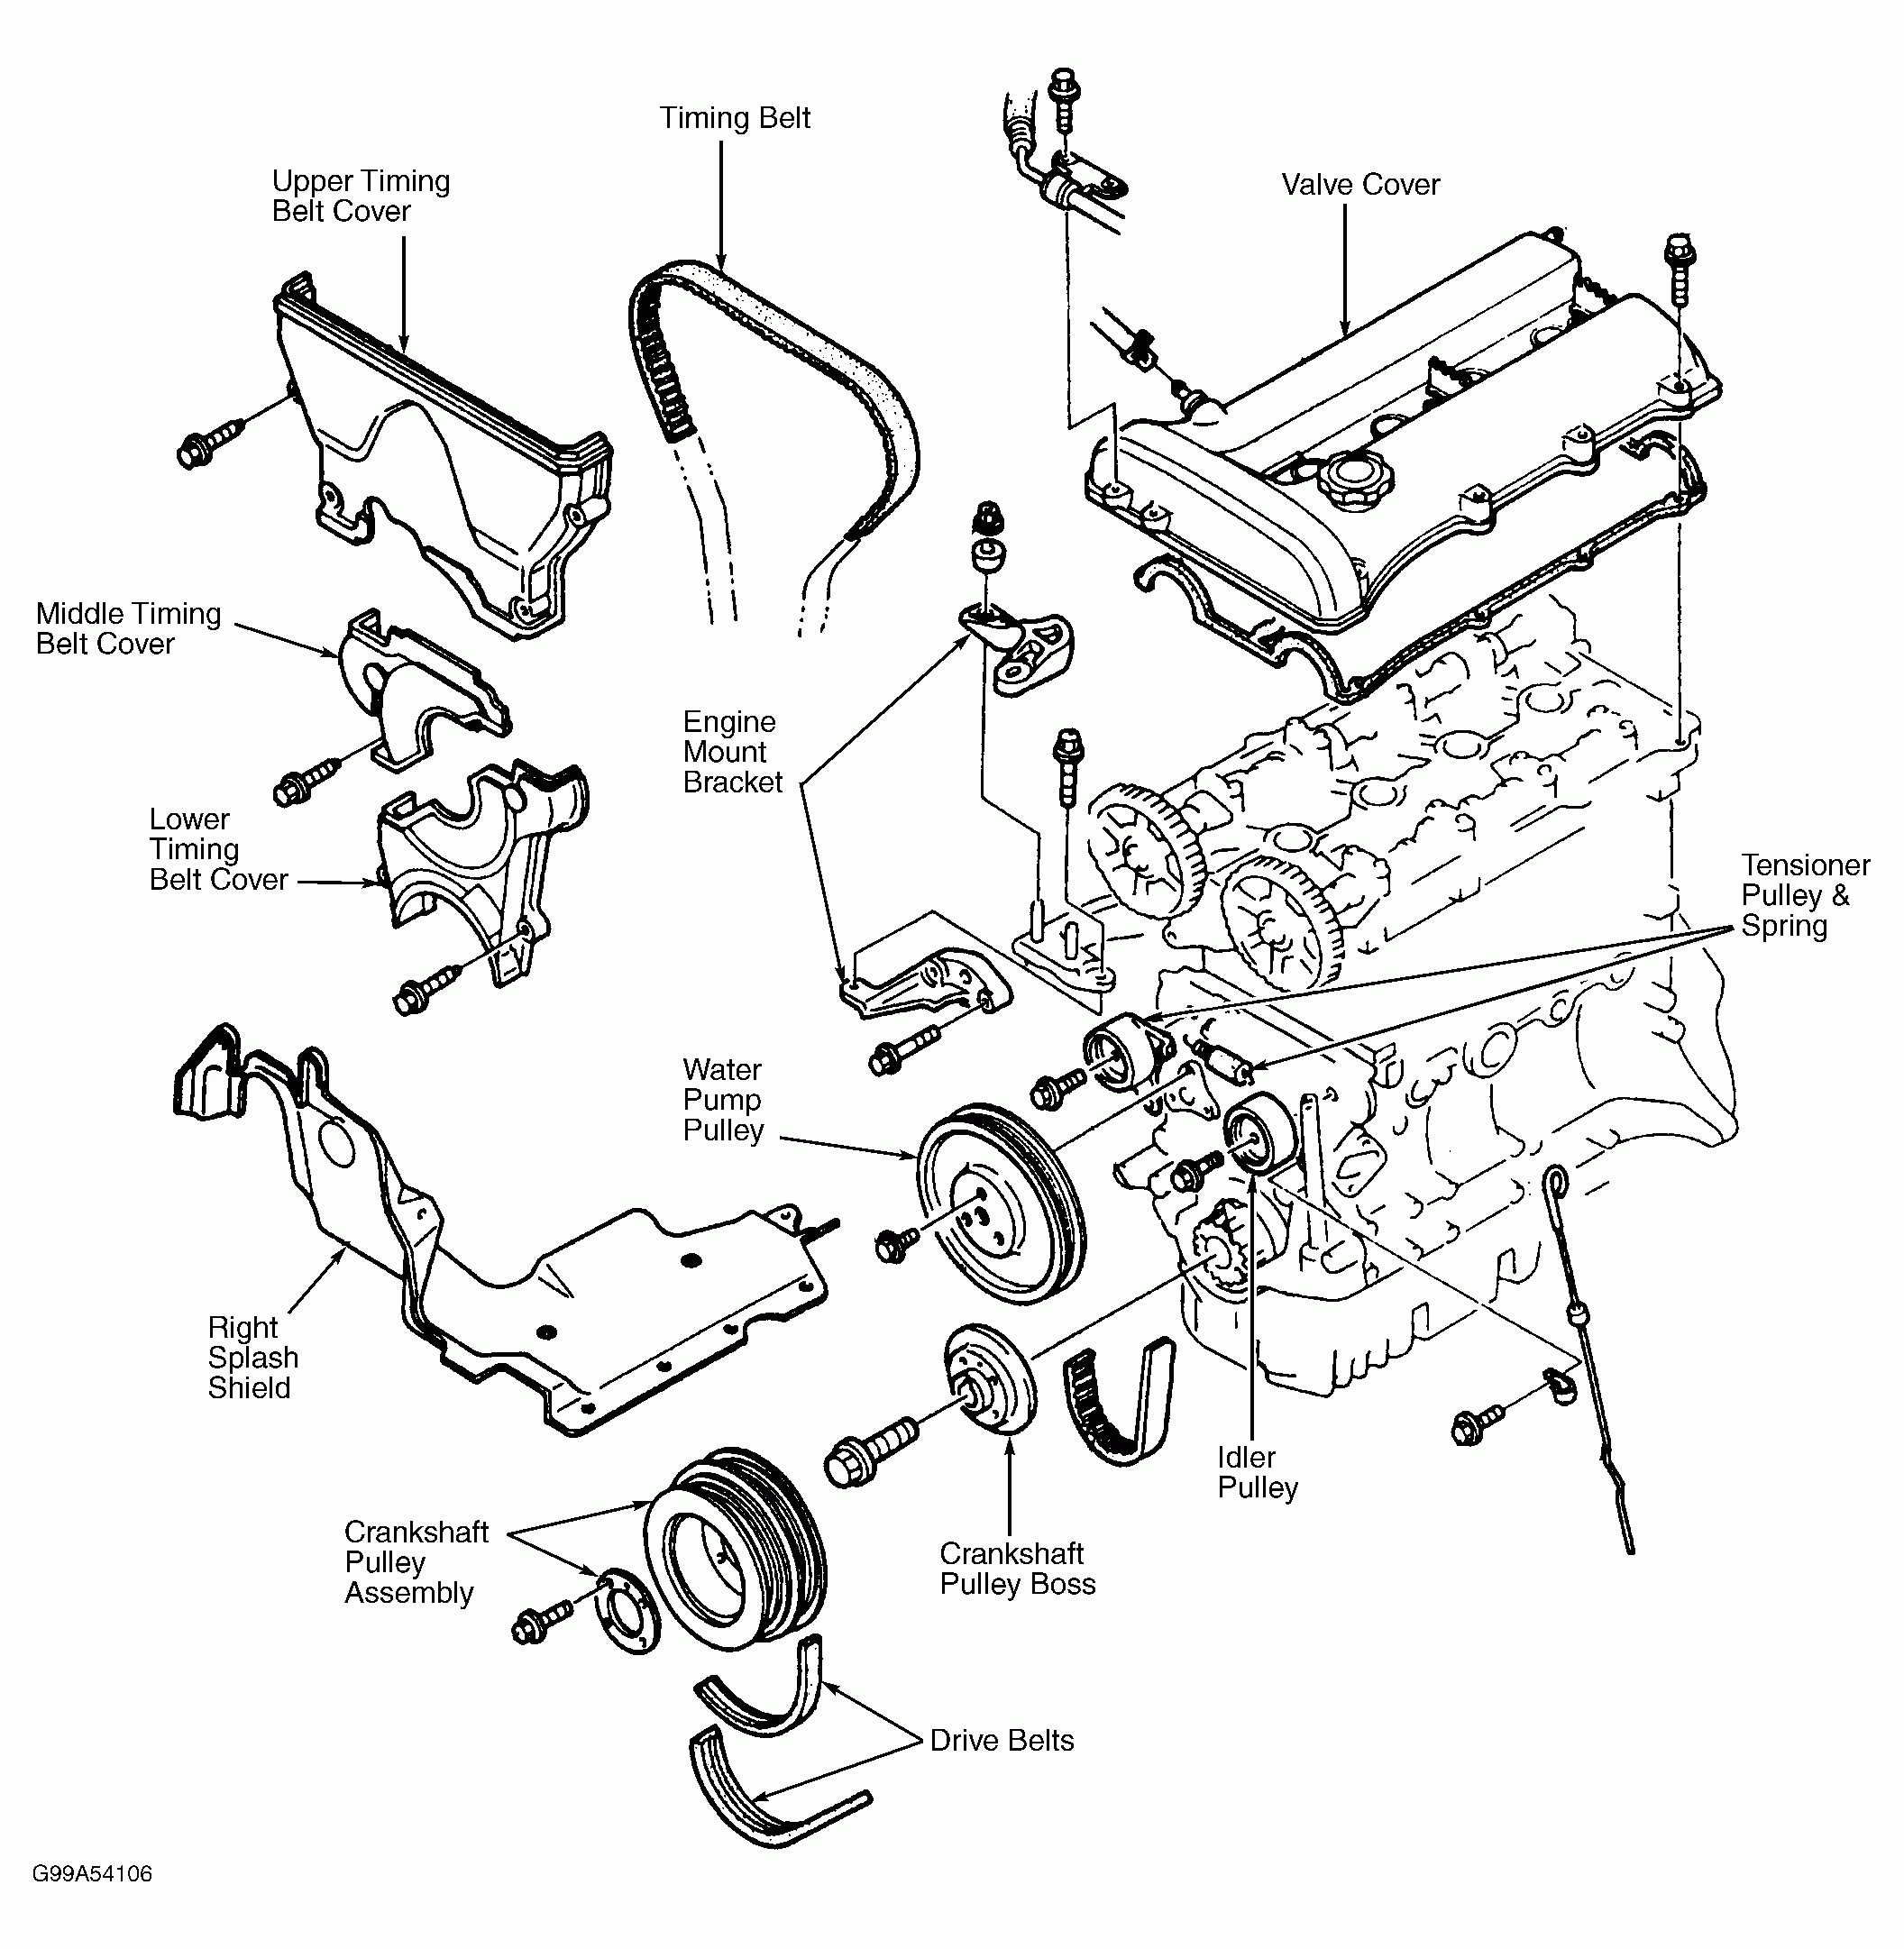 2002 mazda protege5 engine diagram 2002 mazda protege engine diagram 1997 mazda protege serpentine belt of